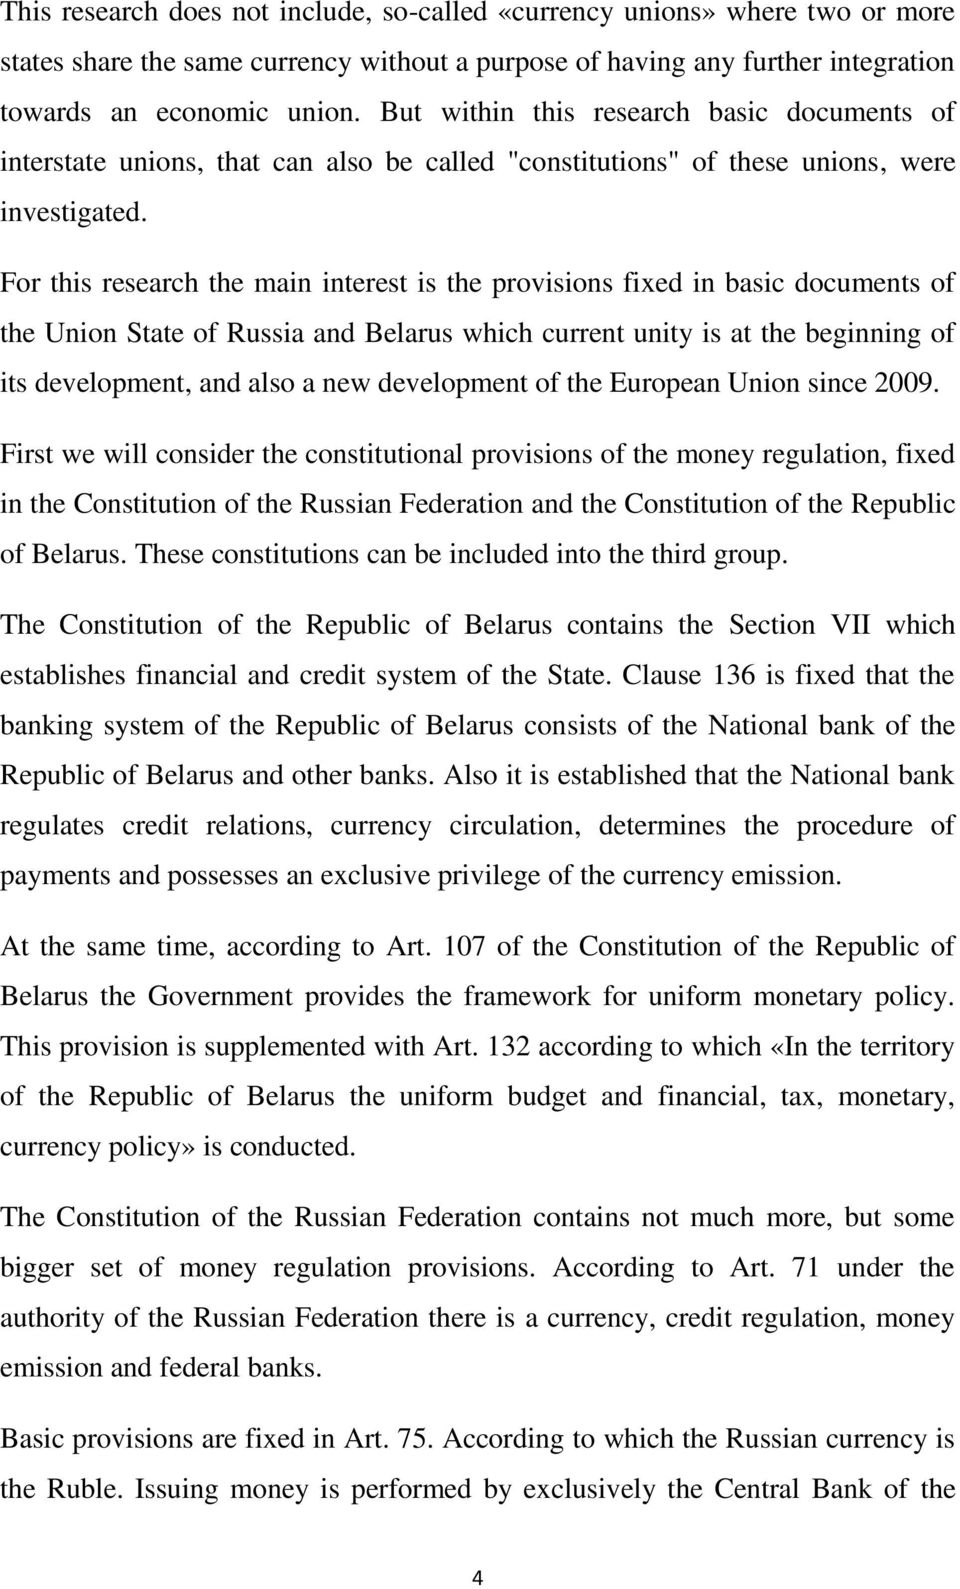 For this research the main interest is the provisions fixed in basic documents of the Union State of Russia and Belarus which current unity is at the beginning of its development, and also a new